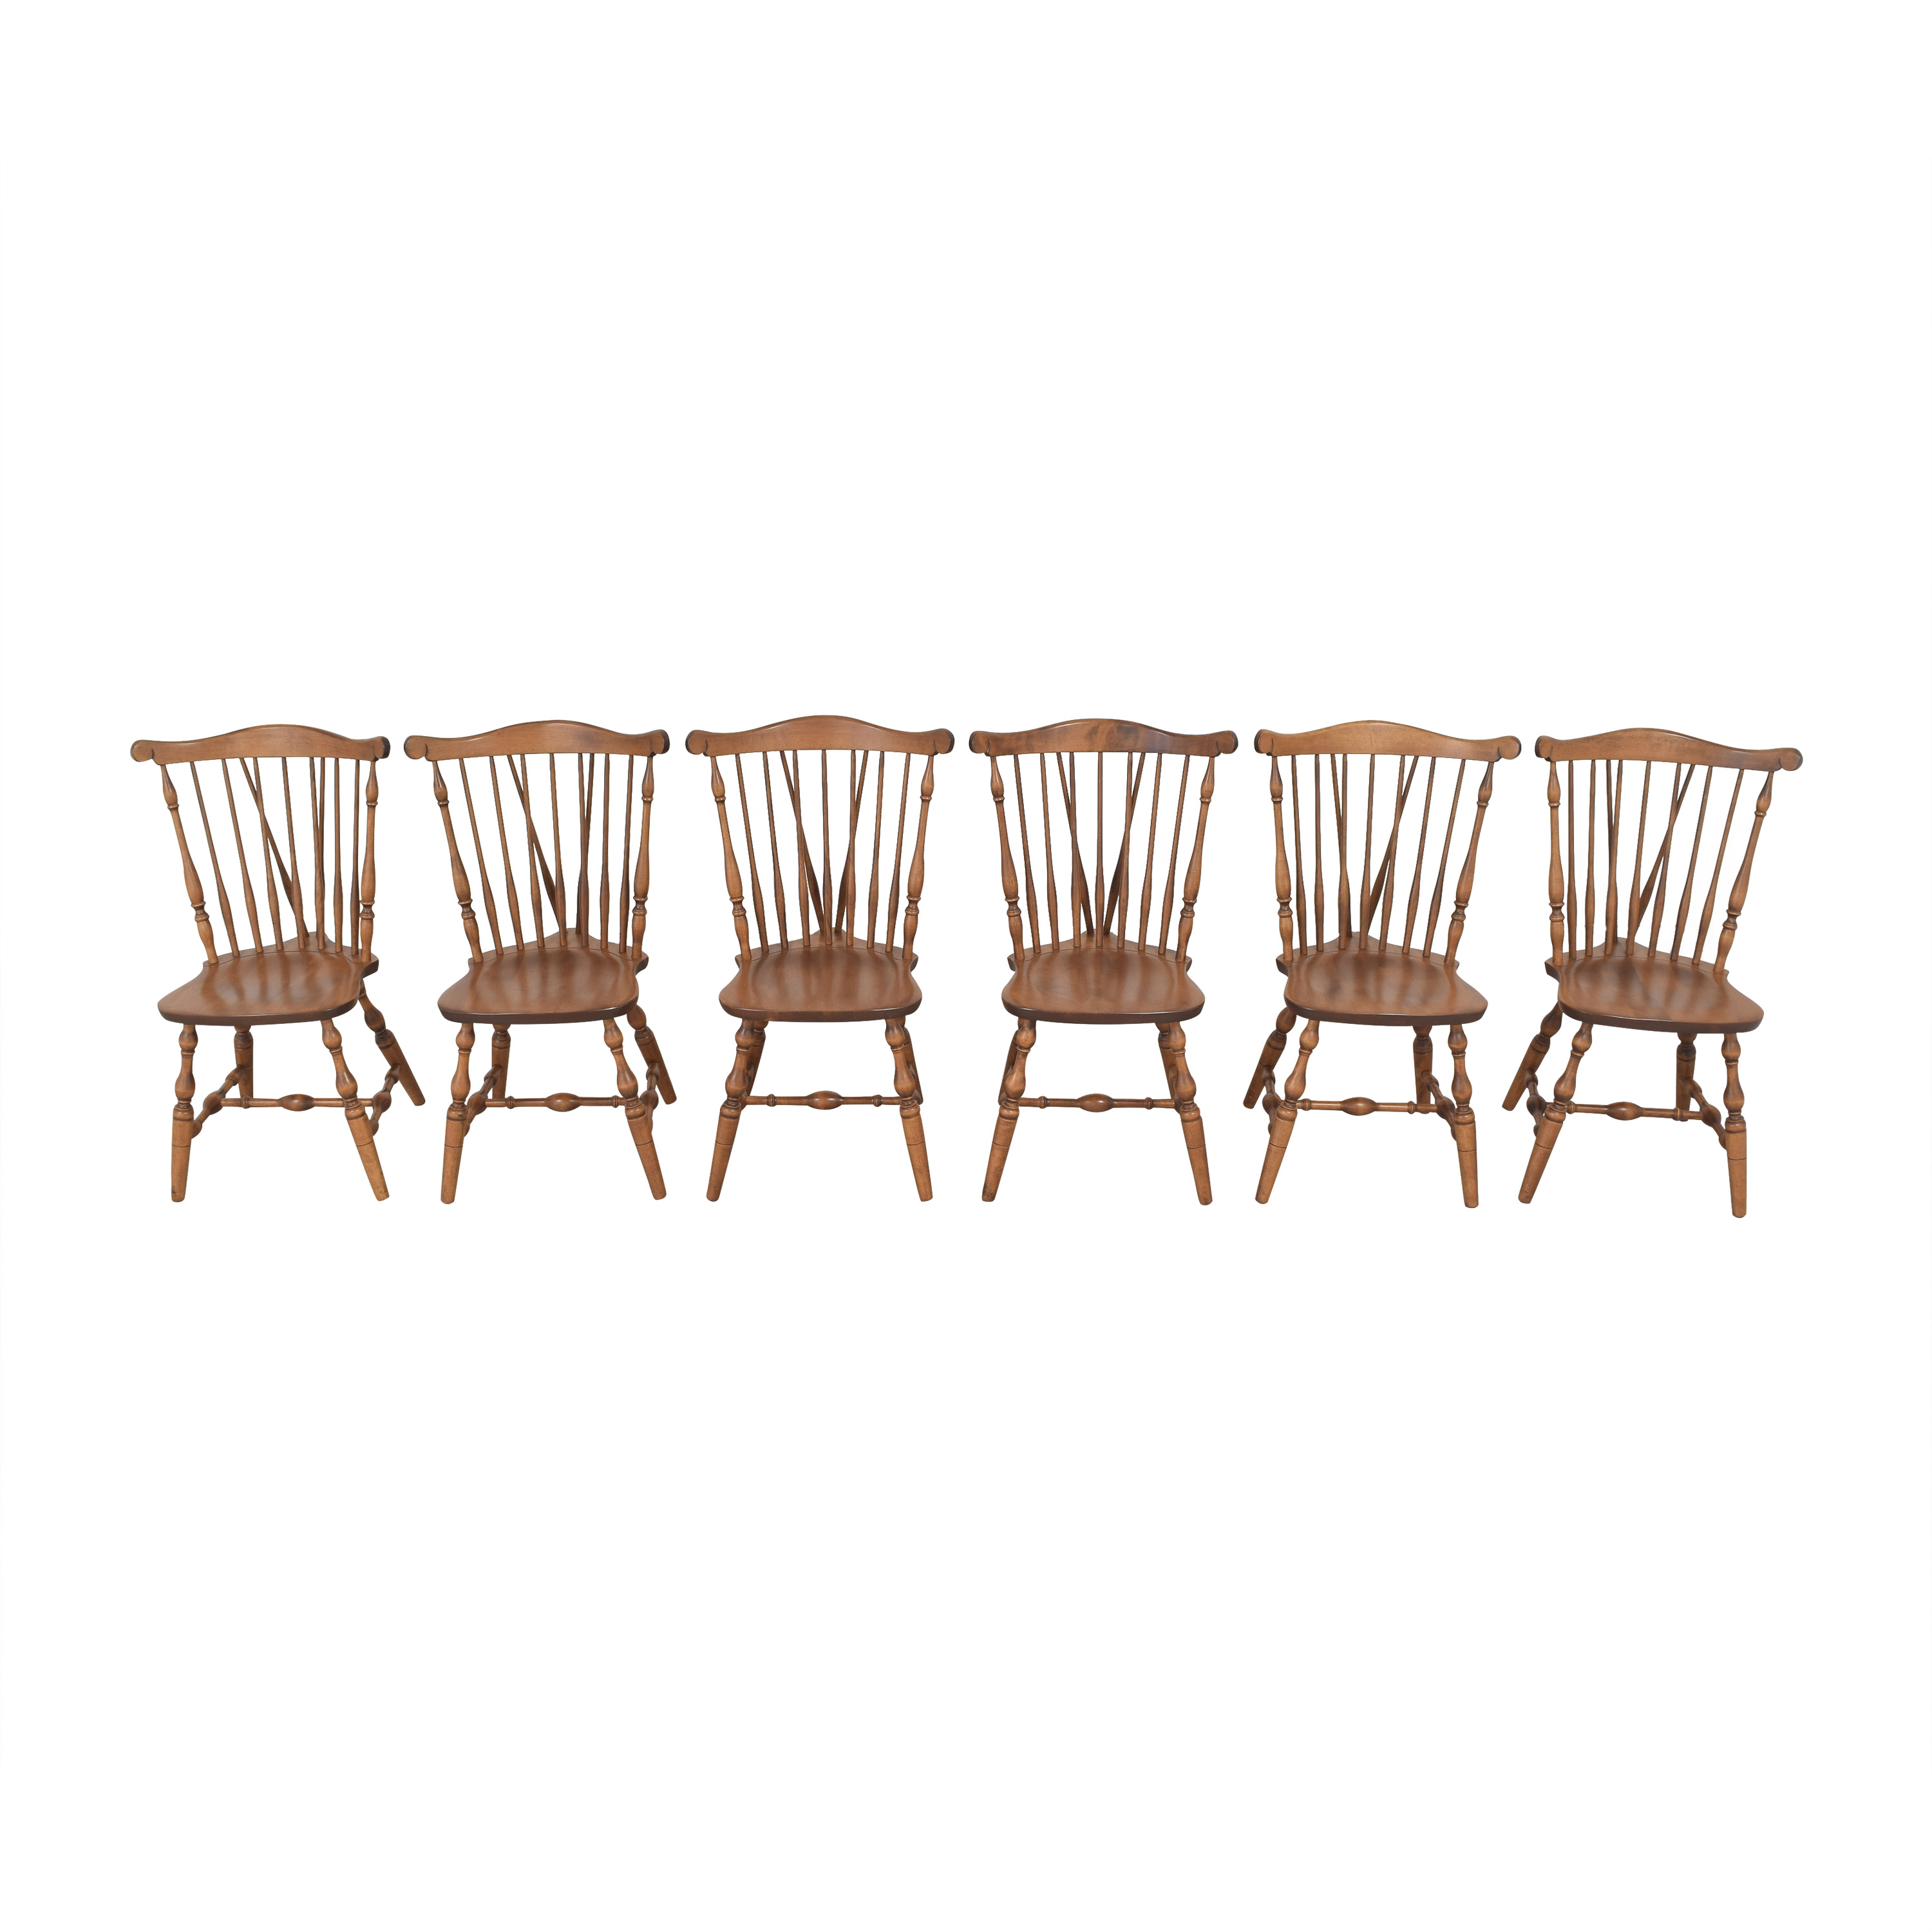 S. Bent & Bros S. Bent & Bros Brace Back Windsor Dining Side Chairs Dining Chairs